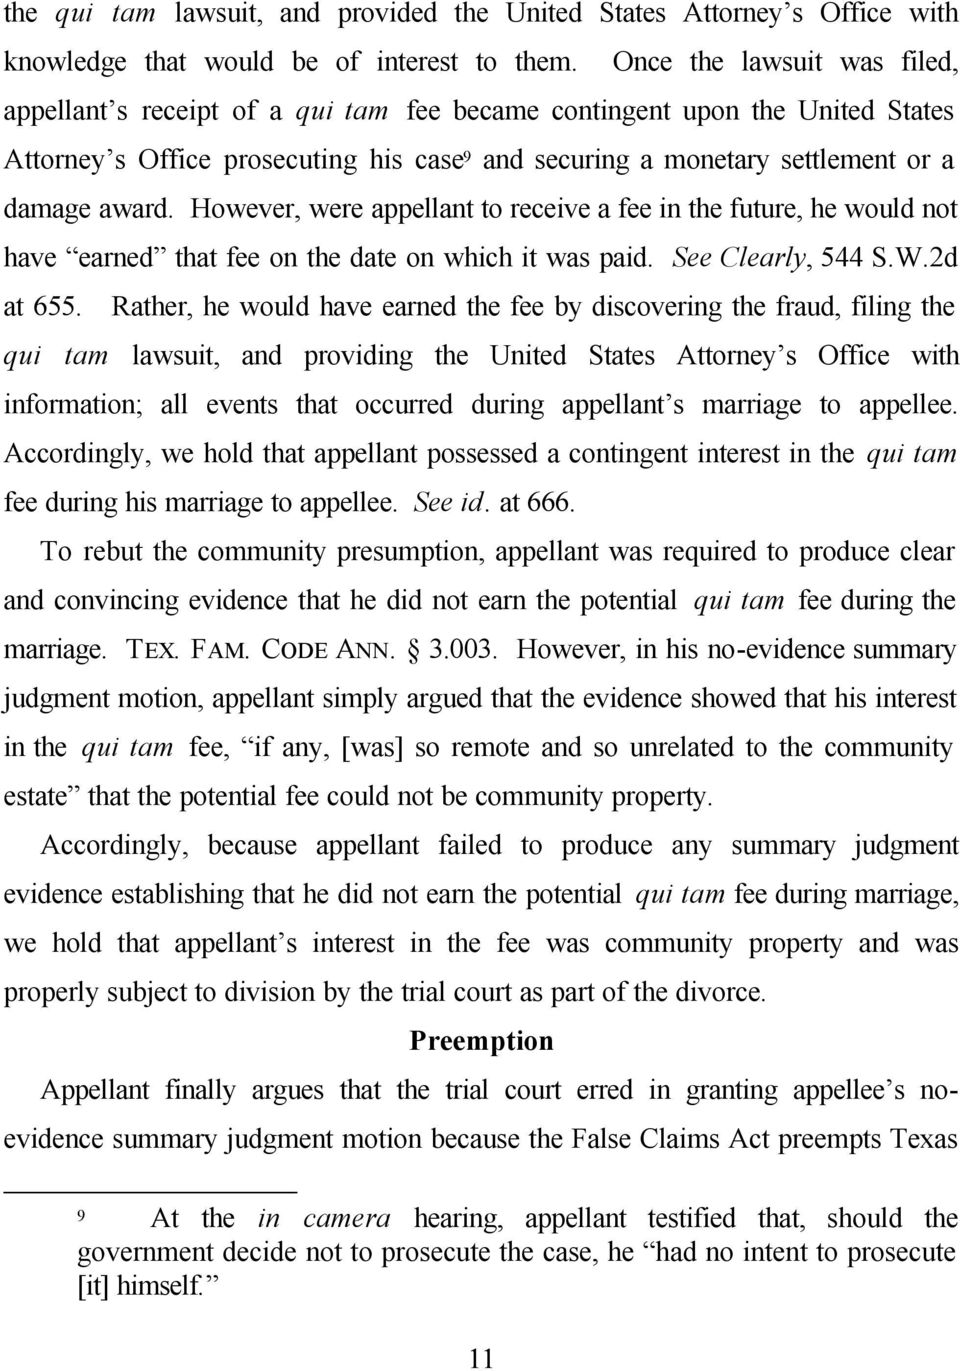 However, were appellant to receive a fee in the future, he would not have earned that fee on the date on which it was paid. See Clearly, 544 S.W.2d at 655.